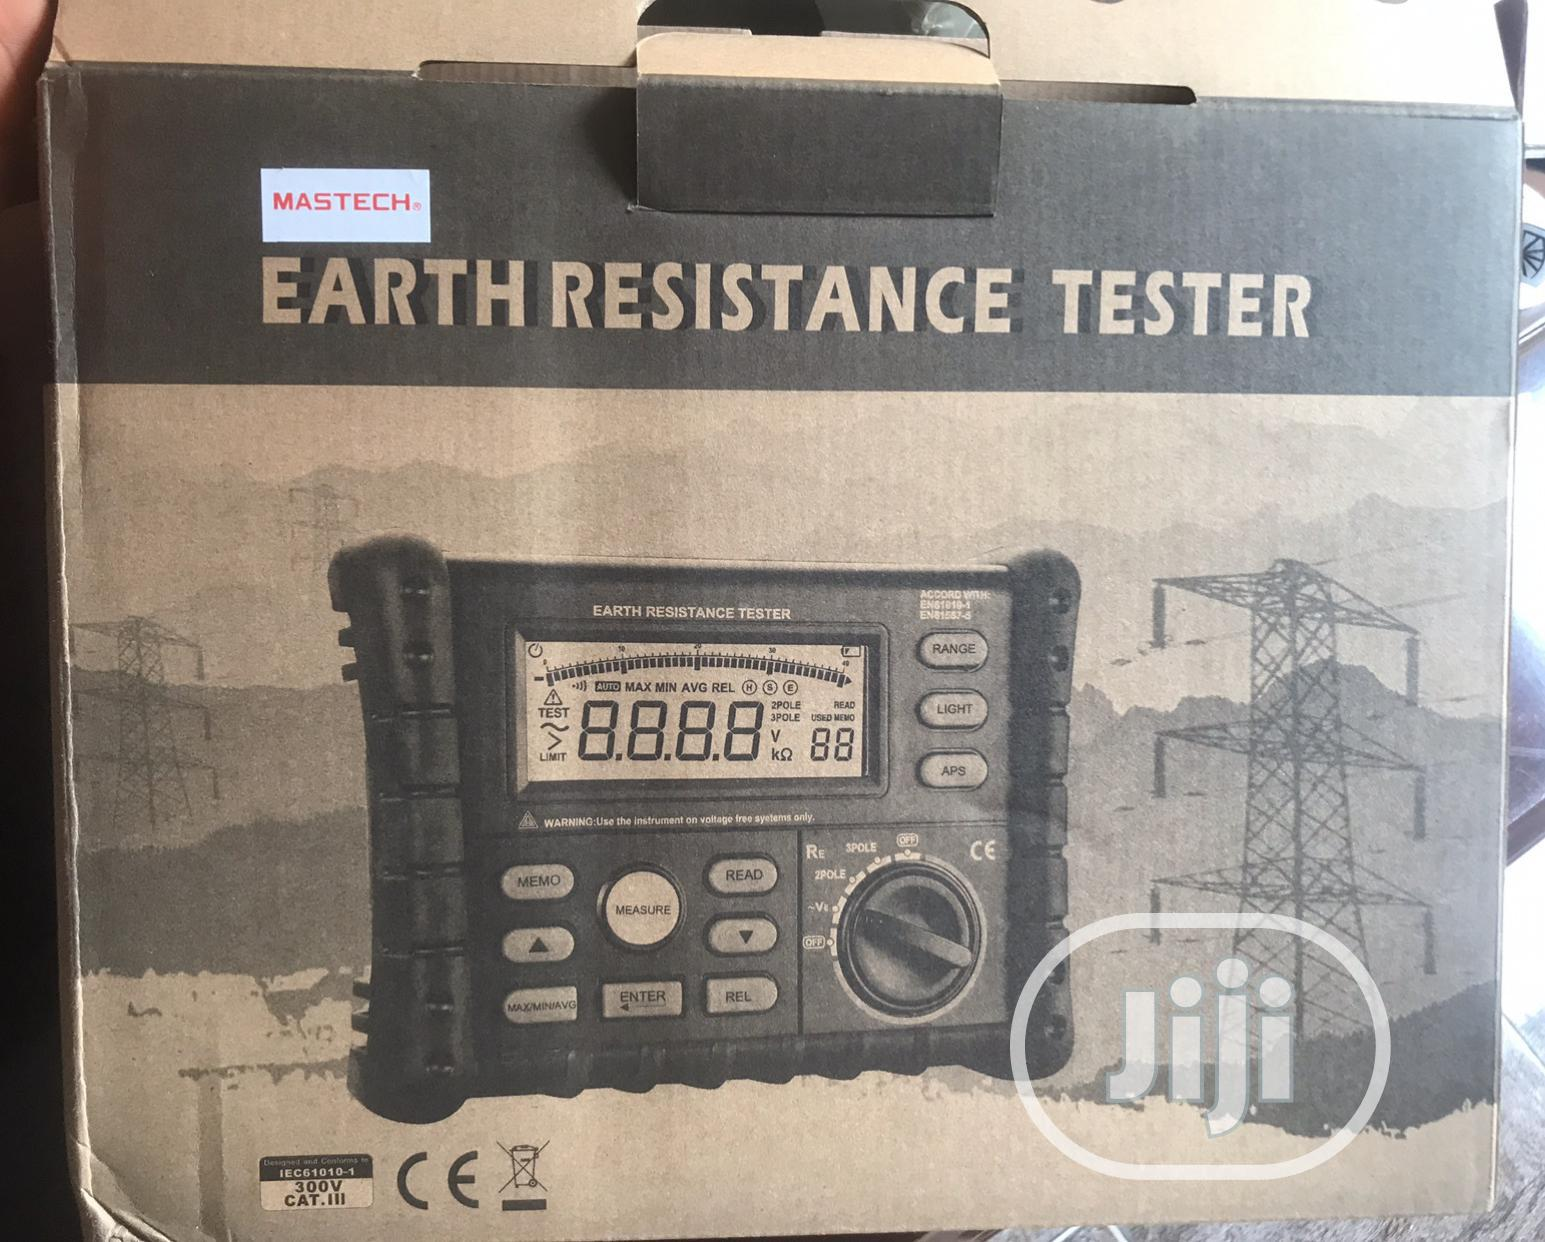 Earth Resistance Tester Mastech